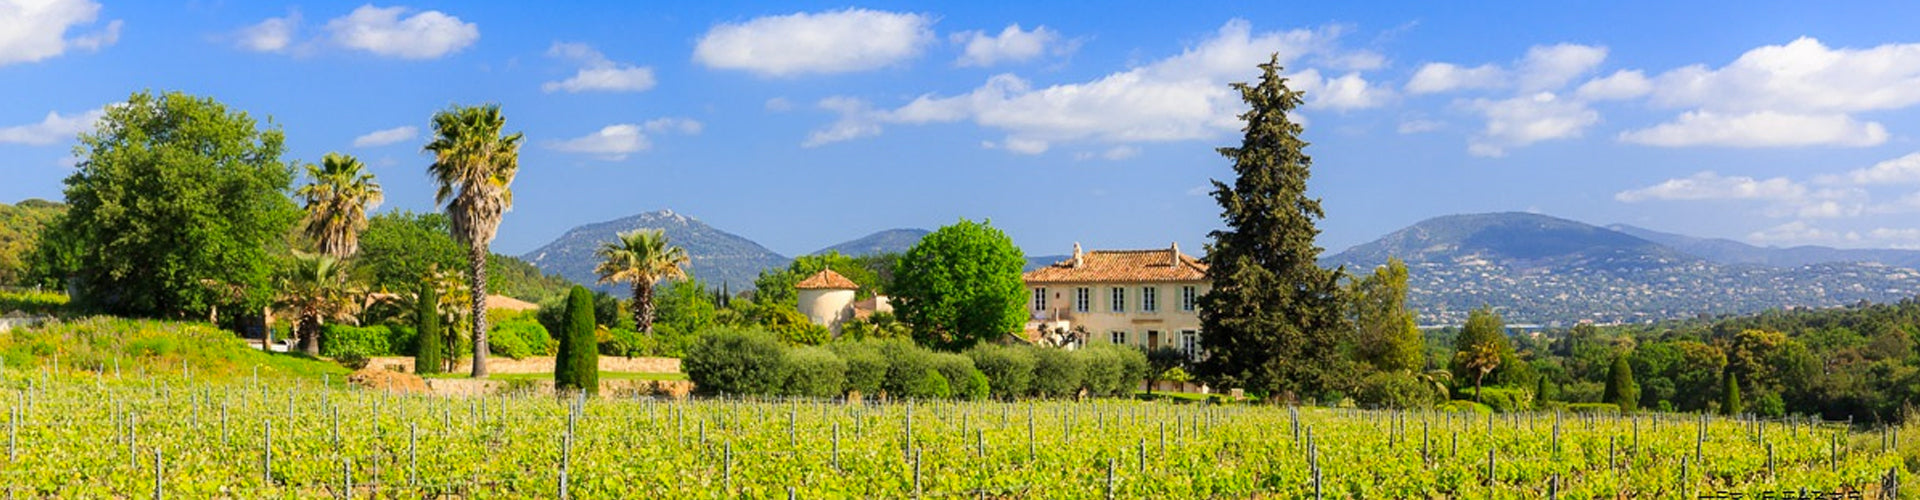 Château Barbeyrolles in Gassin, Saint-Tropez